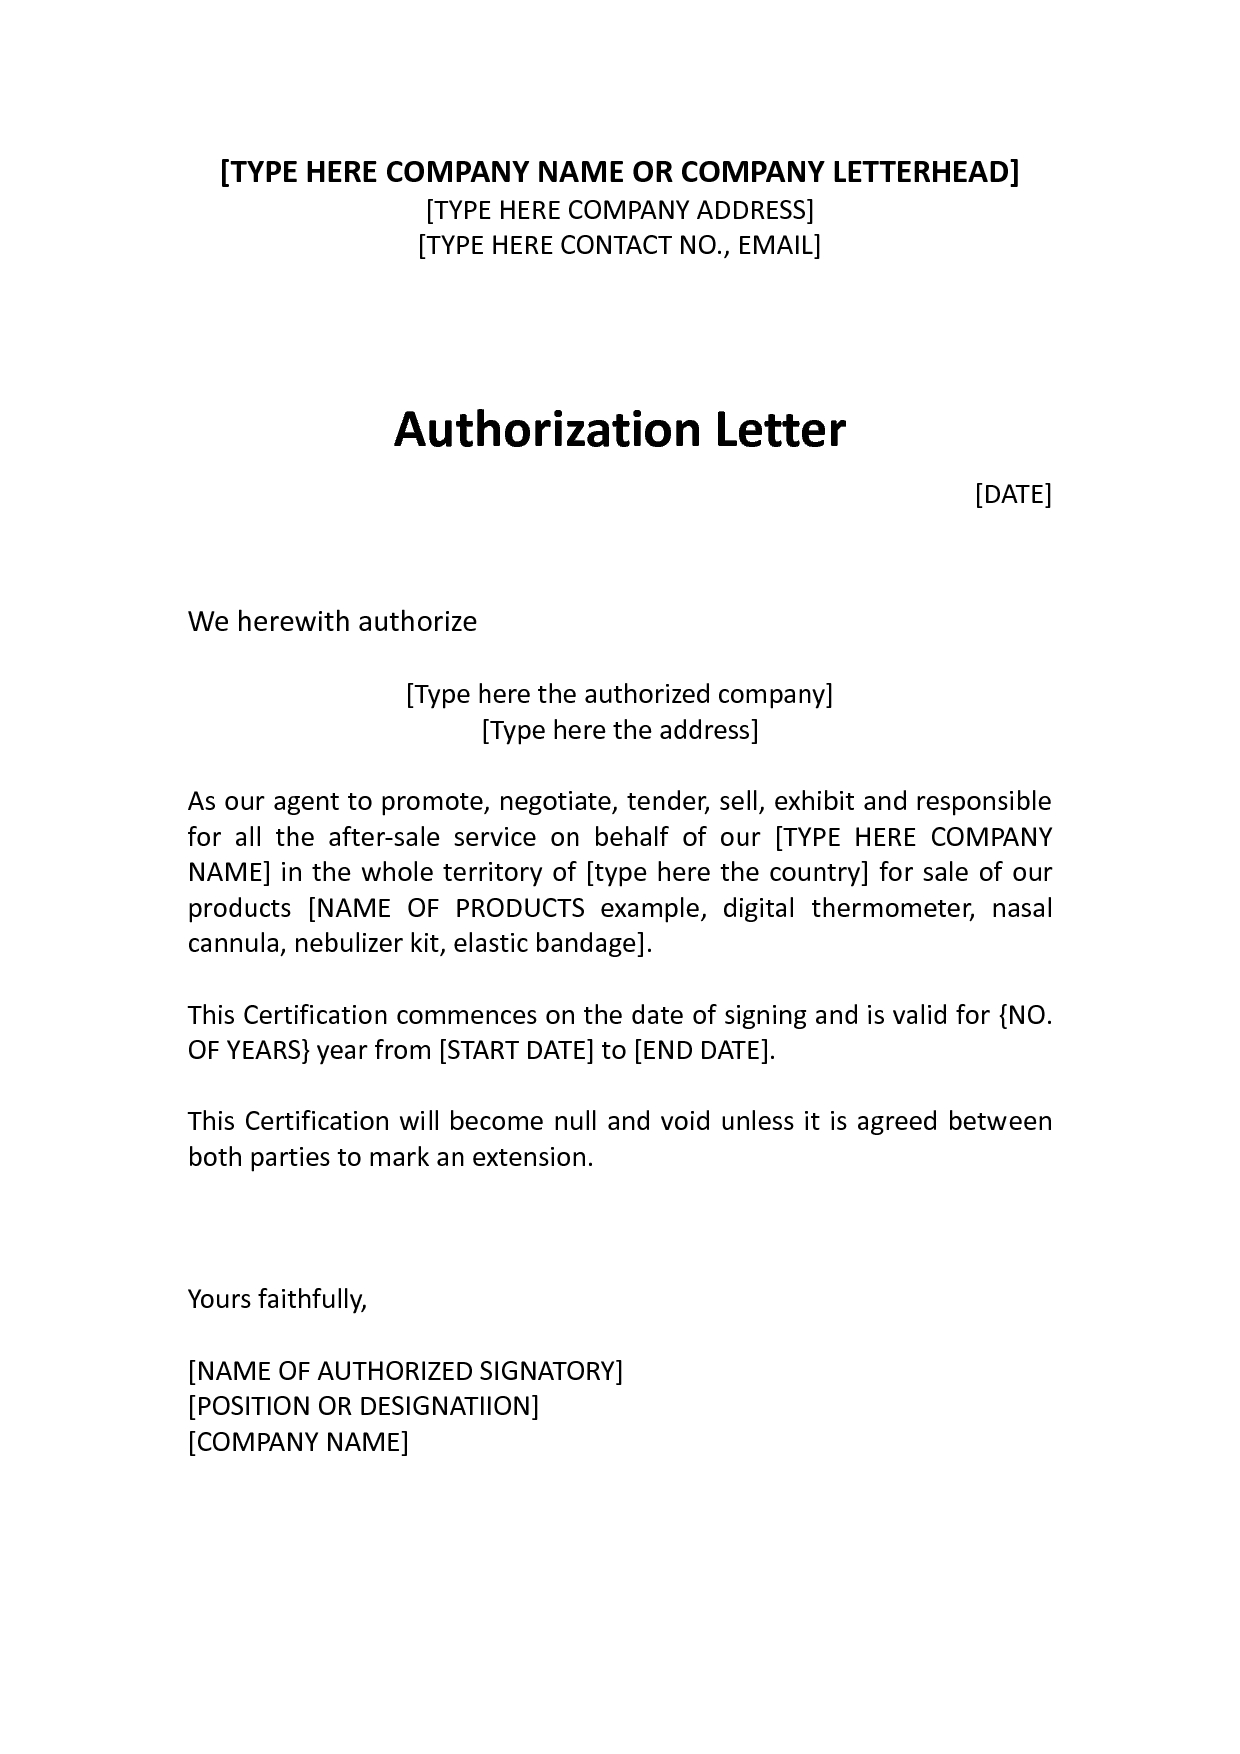 Real Estate Introduction Letter to Friends Template - Authorization Distributor Letter Sample Distributor Dealer